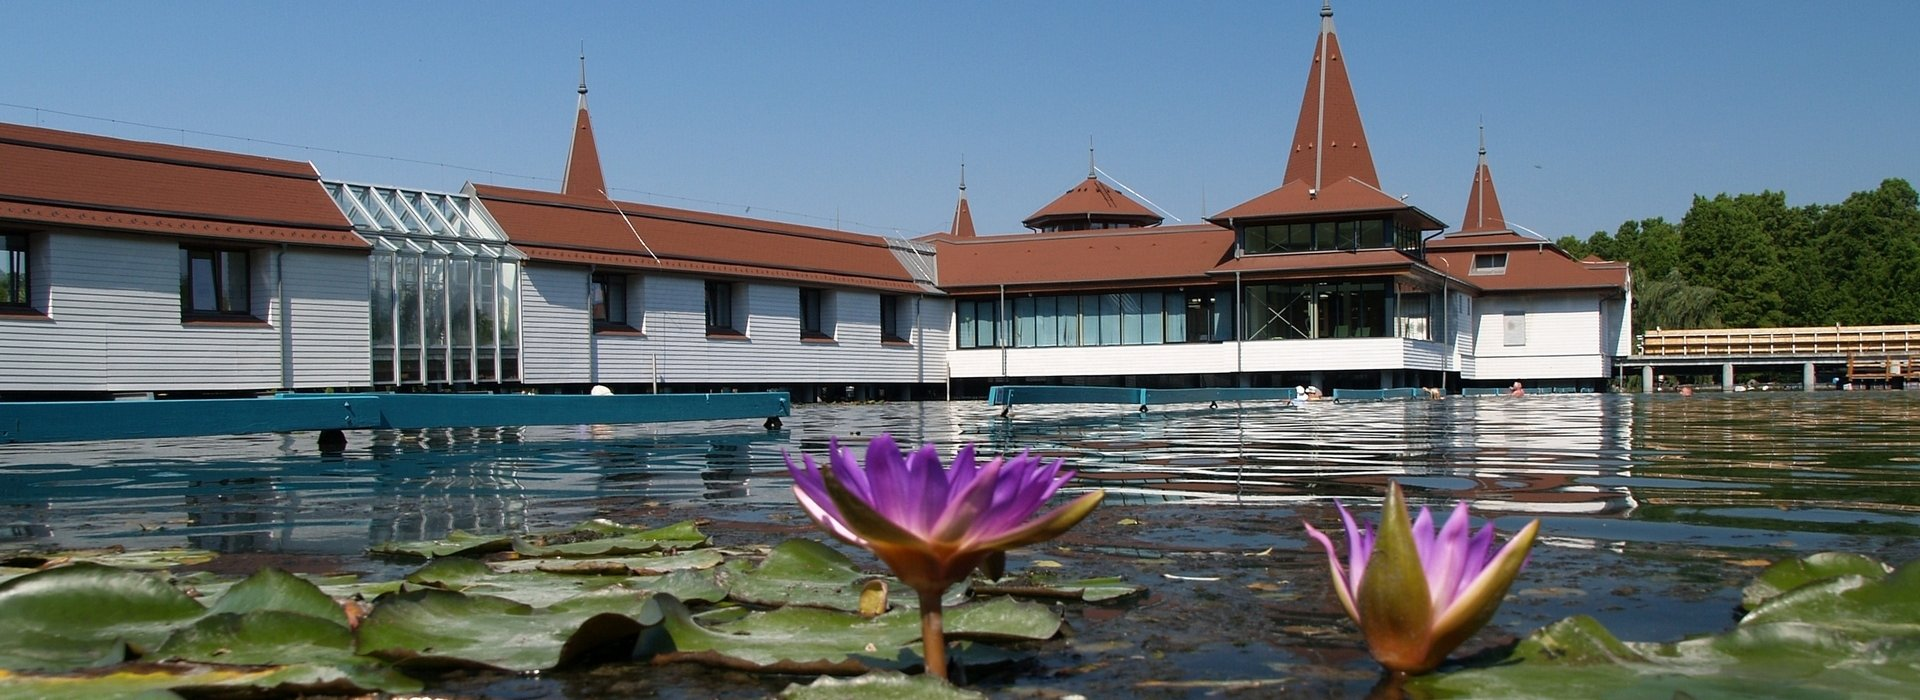 Spa and Wellness Centre Sárvár